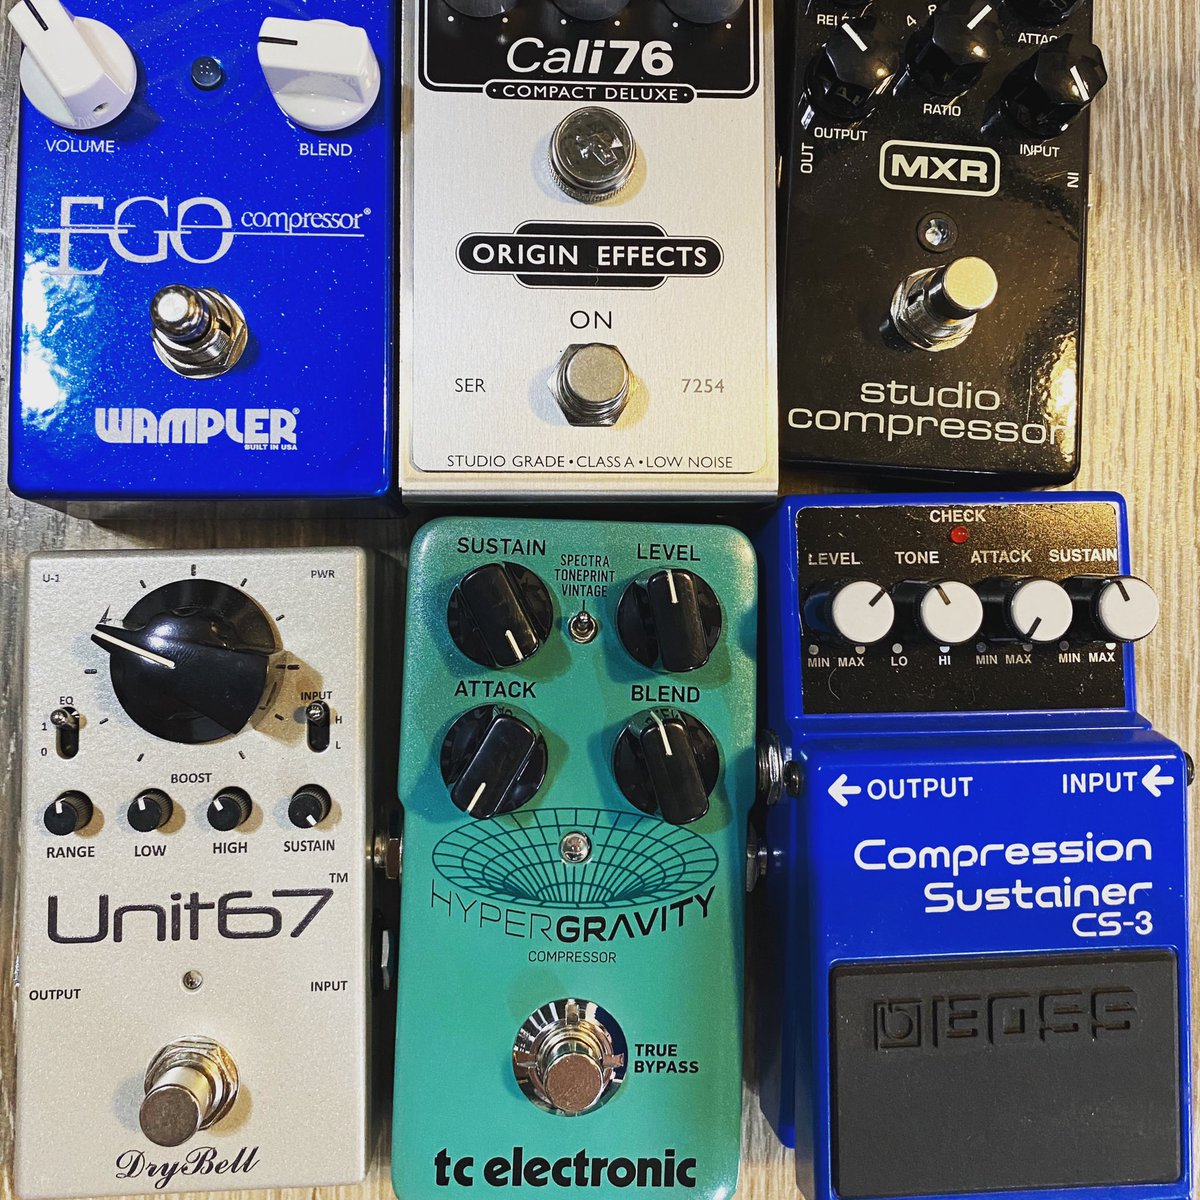 I've spent a couple of days this week squishing tones with a bunch of cool pedals...what's your favorite compressor?  #wamplerpedals #effectspedals #notpedalbored #knowyourtone #guitar #guitarpedals #gearybusey #guitareffects #chasingtone  #wampler #gearnerdspic.twitter.com/XXfK41M6Mf